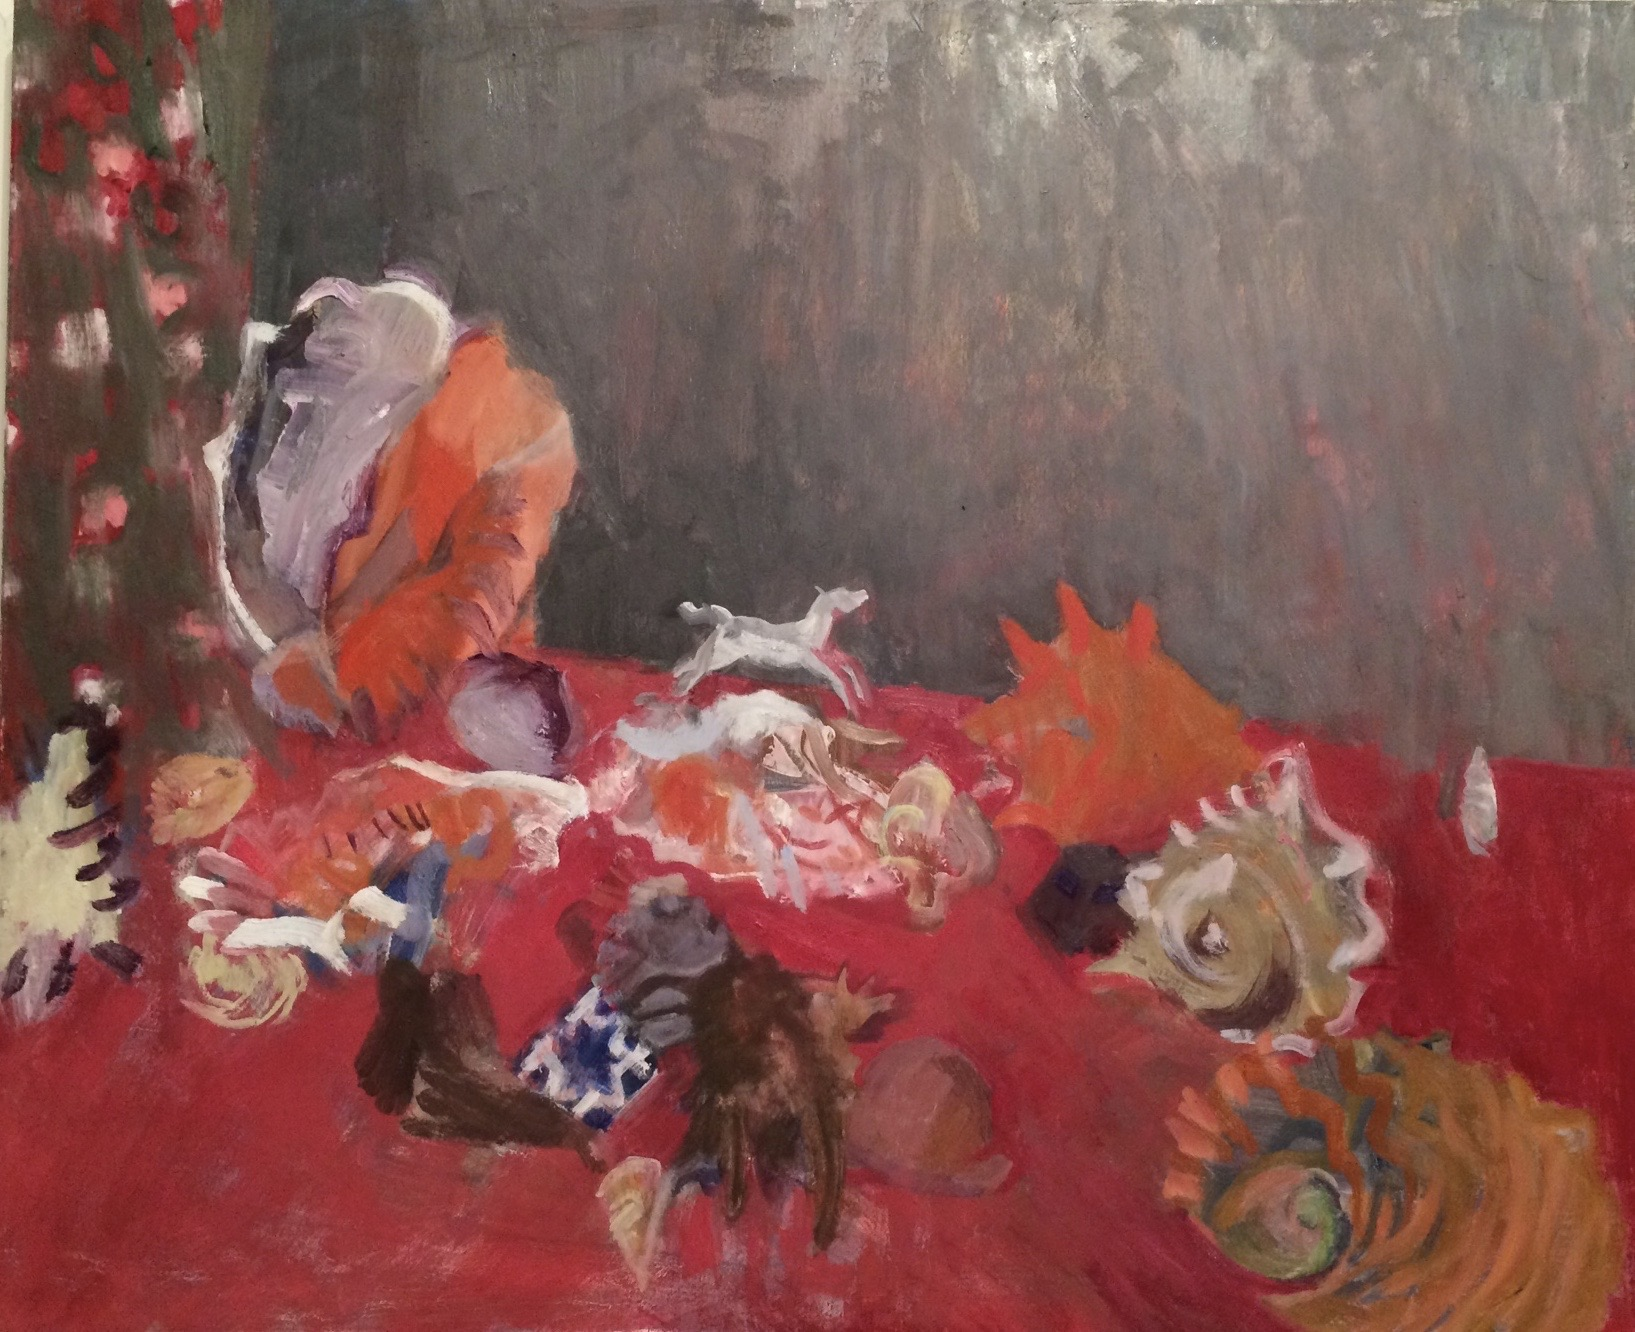 Shells on a Red Table, 2014